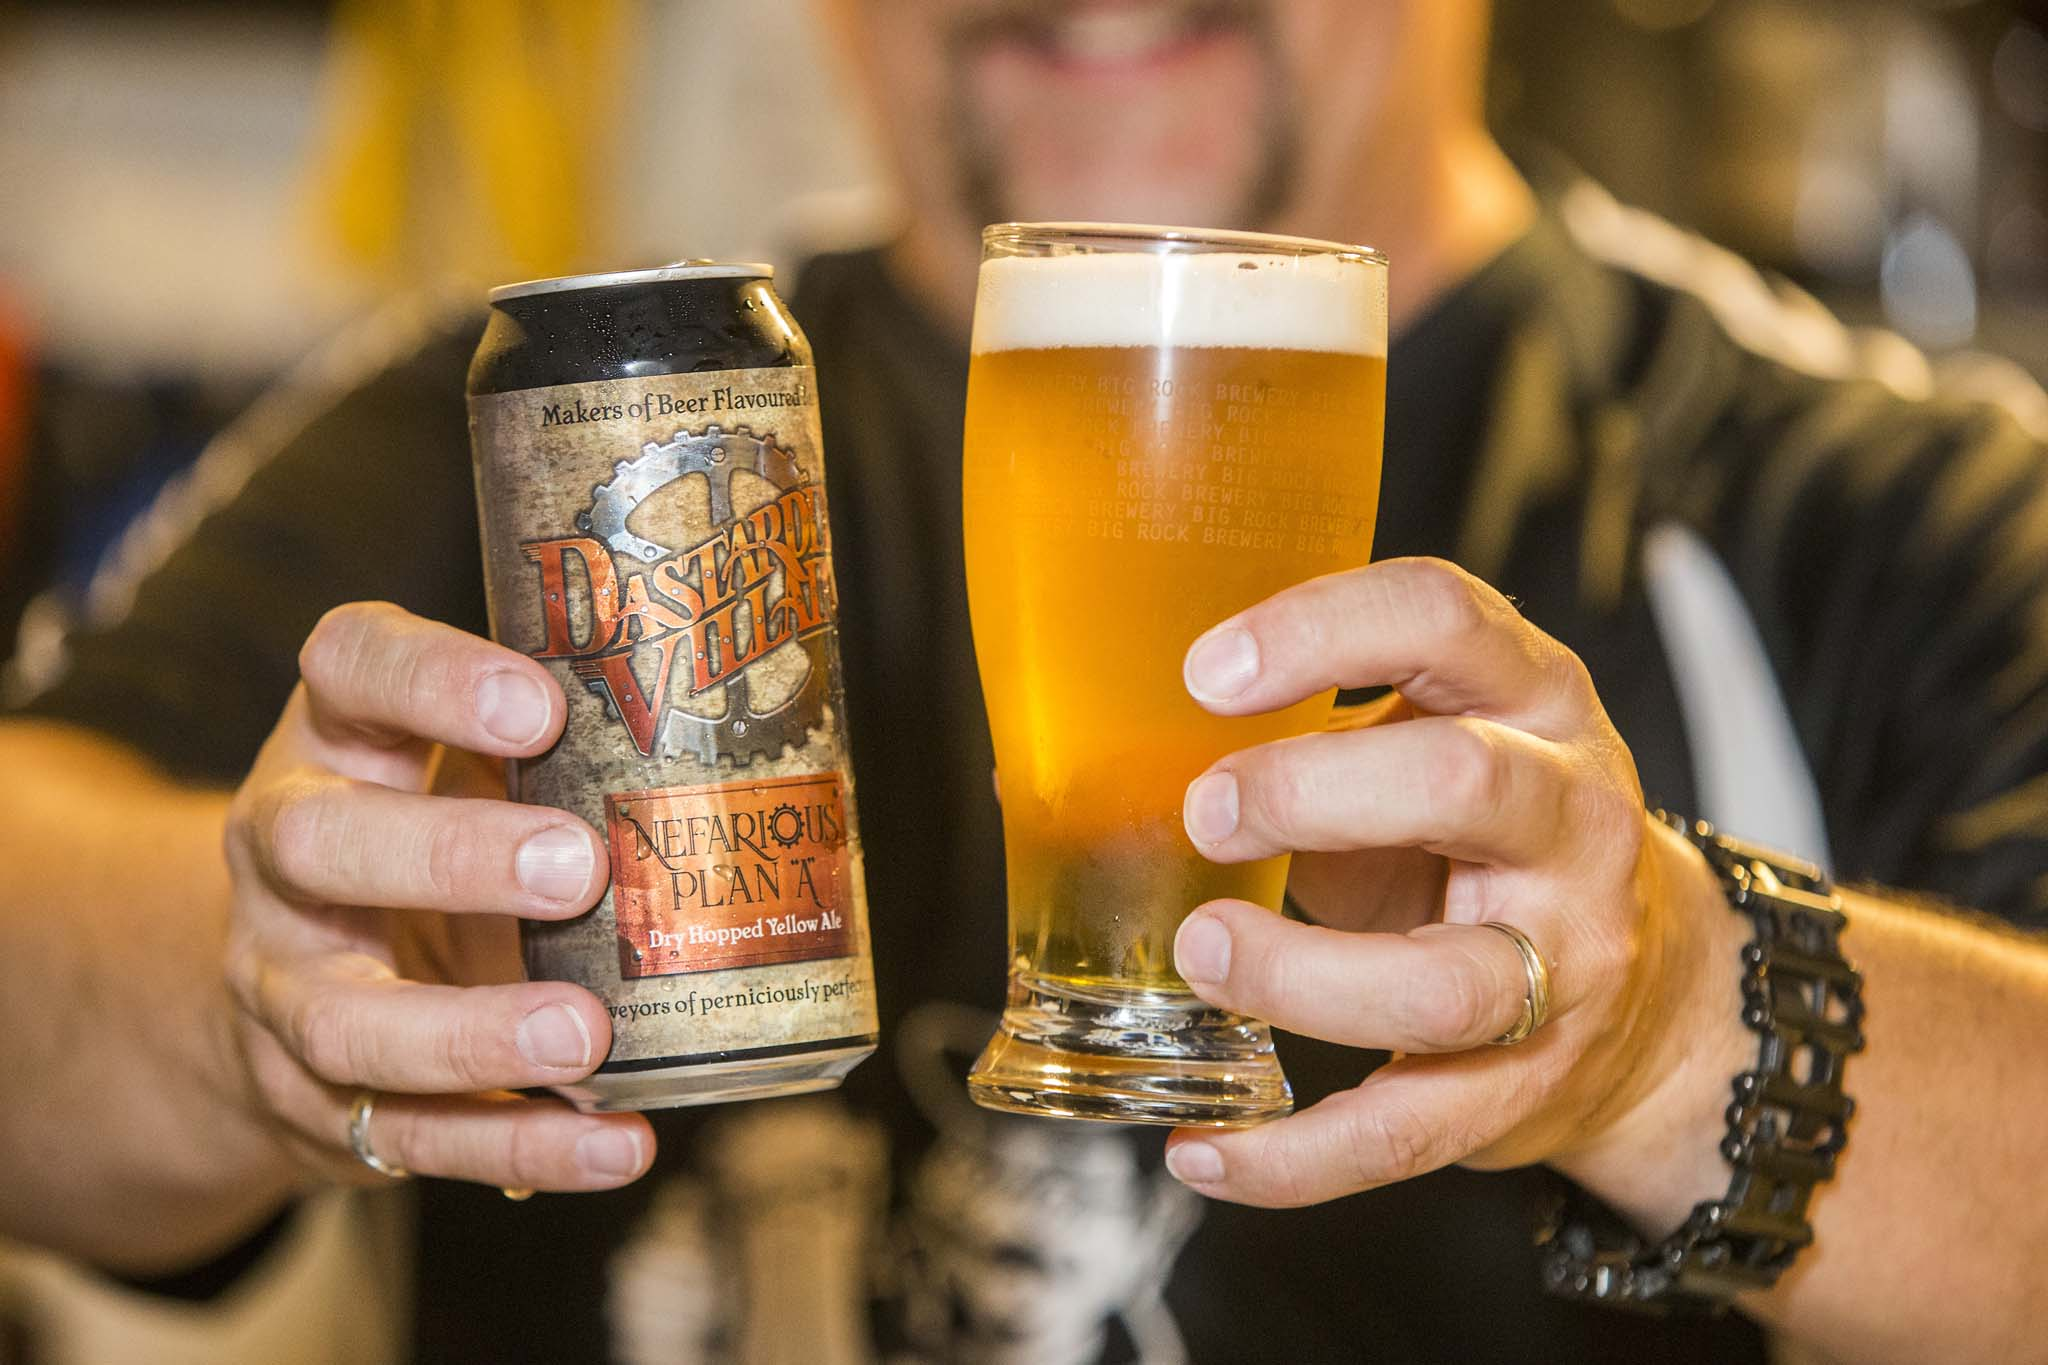 Dastardly Villain's first commercial release, the Nefarious Plan A yellow ale, was launched earlier in August